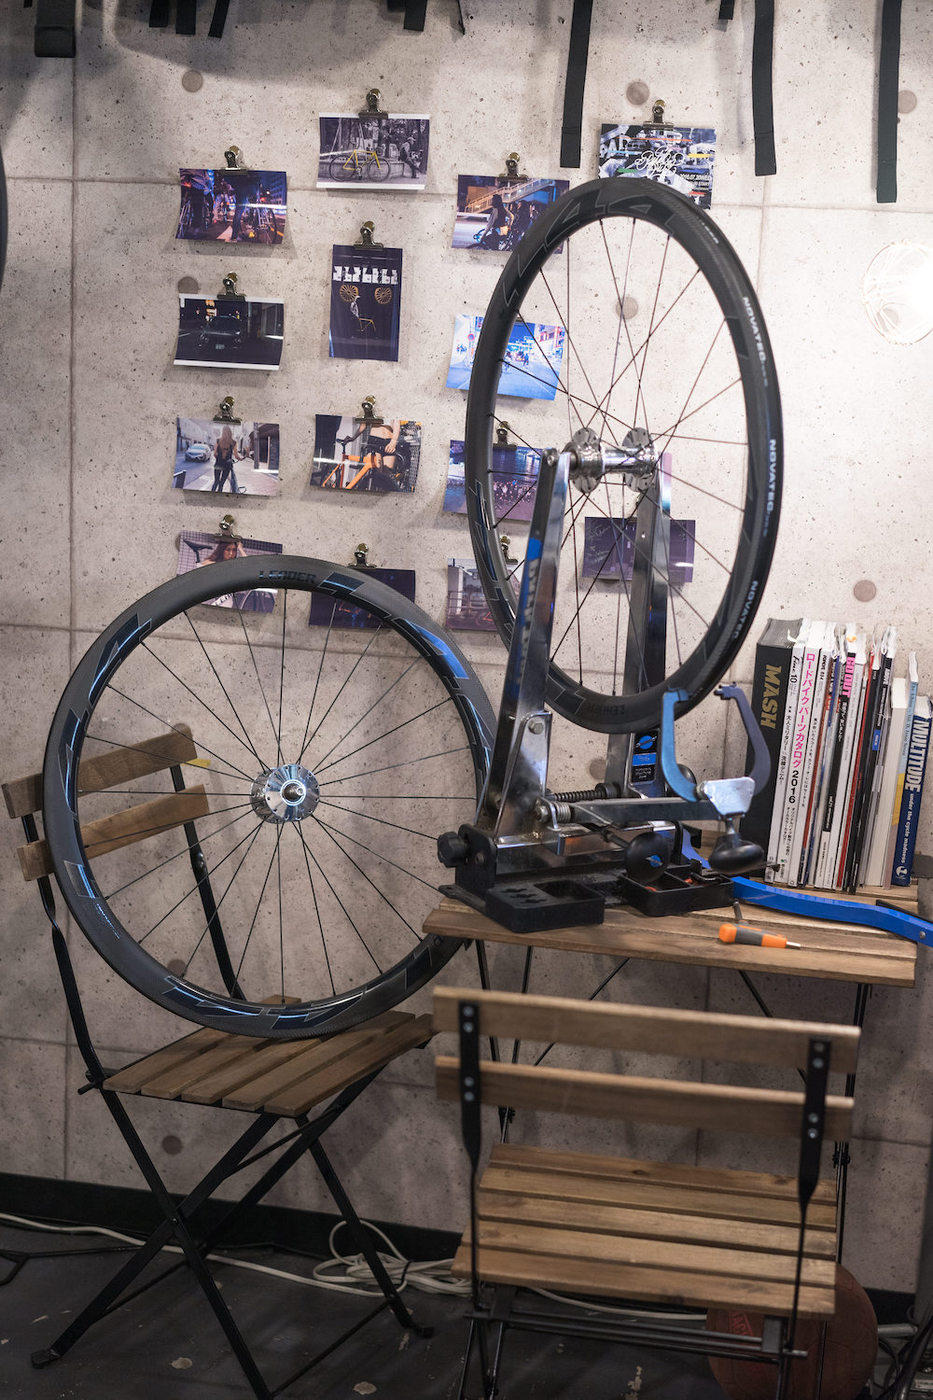 LEADER BIKES,BROTURES,PHILWOOD,CUSTOM,WHEEL